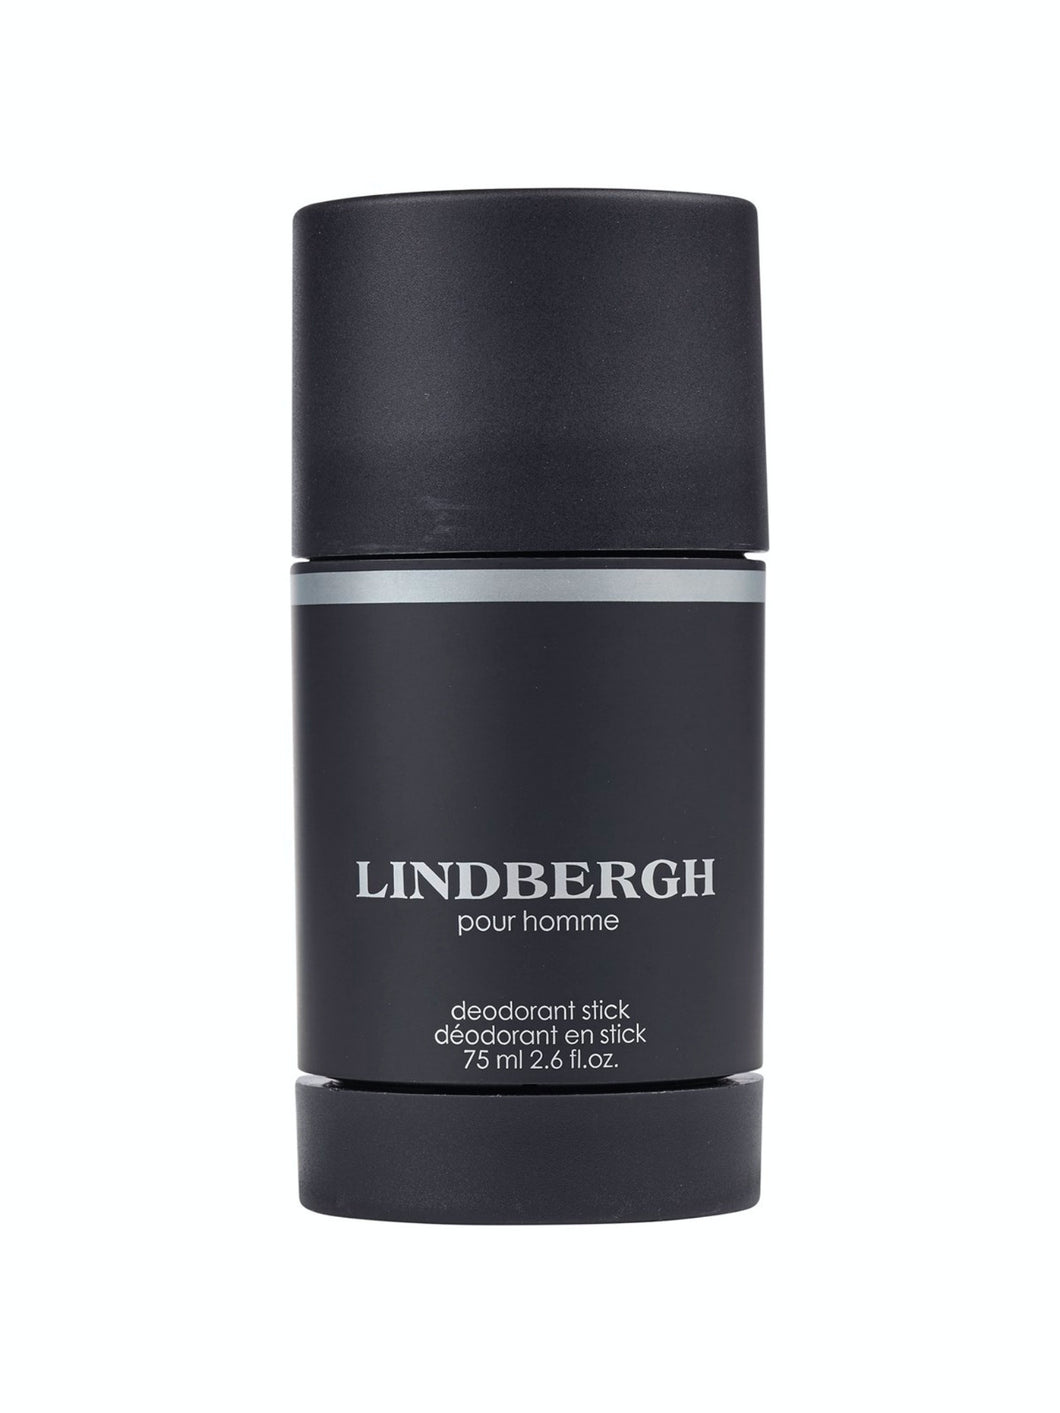 Lindbergh Deo Stick - One Size - PARFYM ACCESSOARER, DEO,